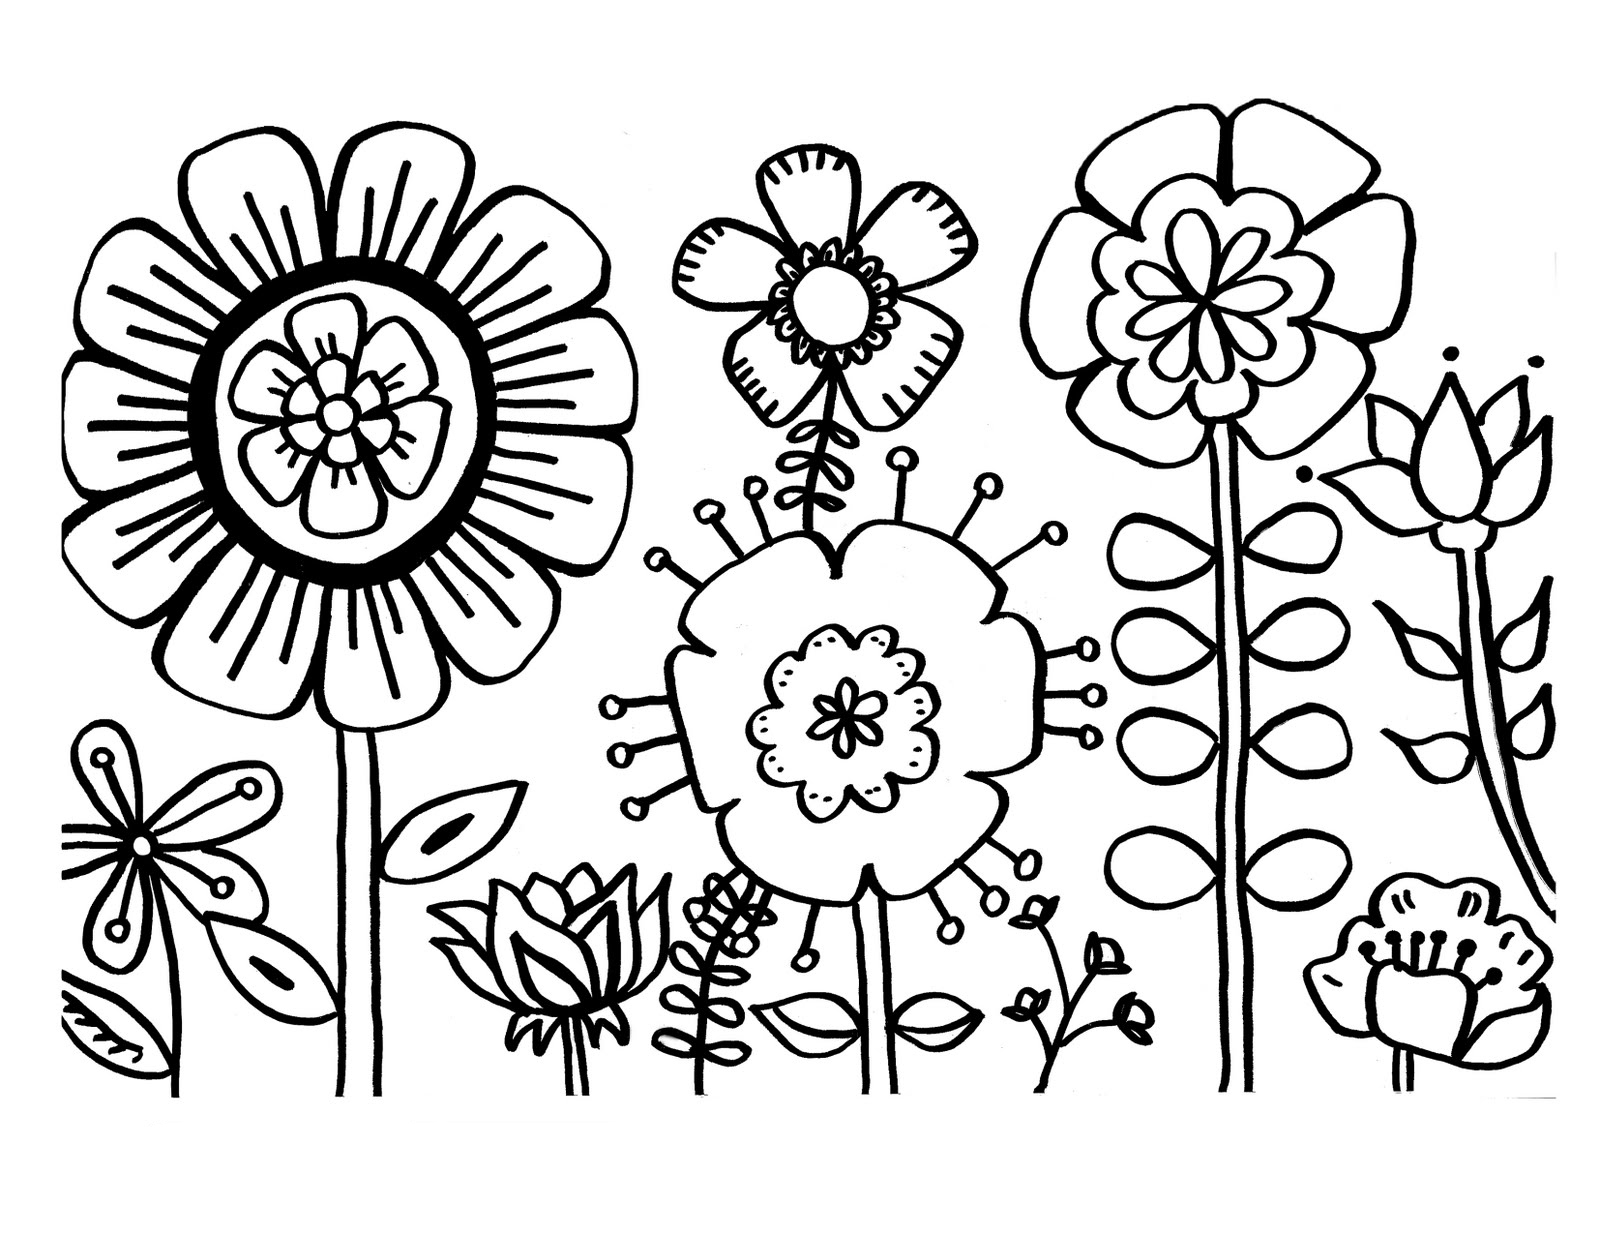 photo regarding Printable Flower Coloring Pages known as Absolutely free Printable Flower Coloring Web pages For Youngsters - Least difficult